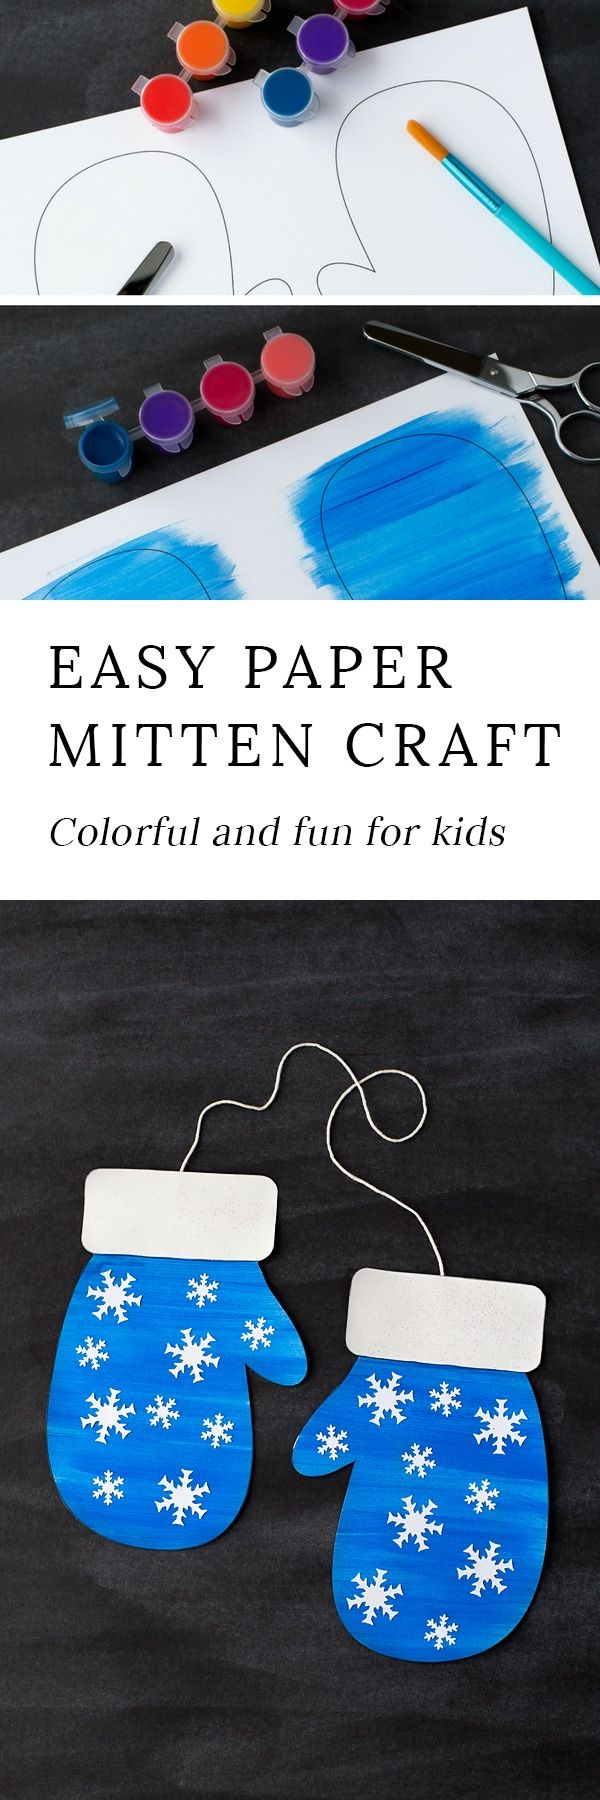 500 best winter crafts and learning for kids images on pinterest